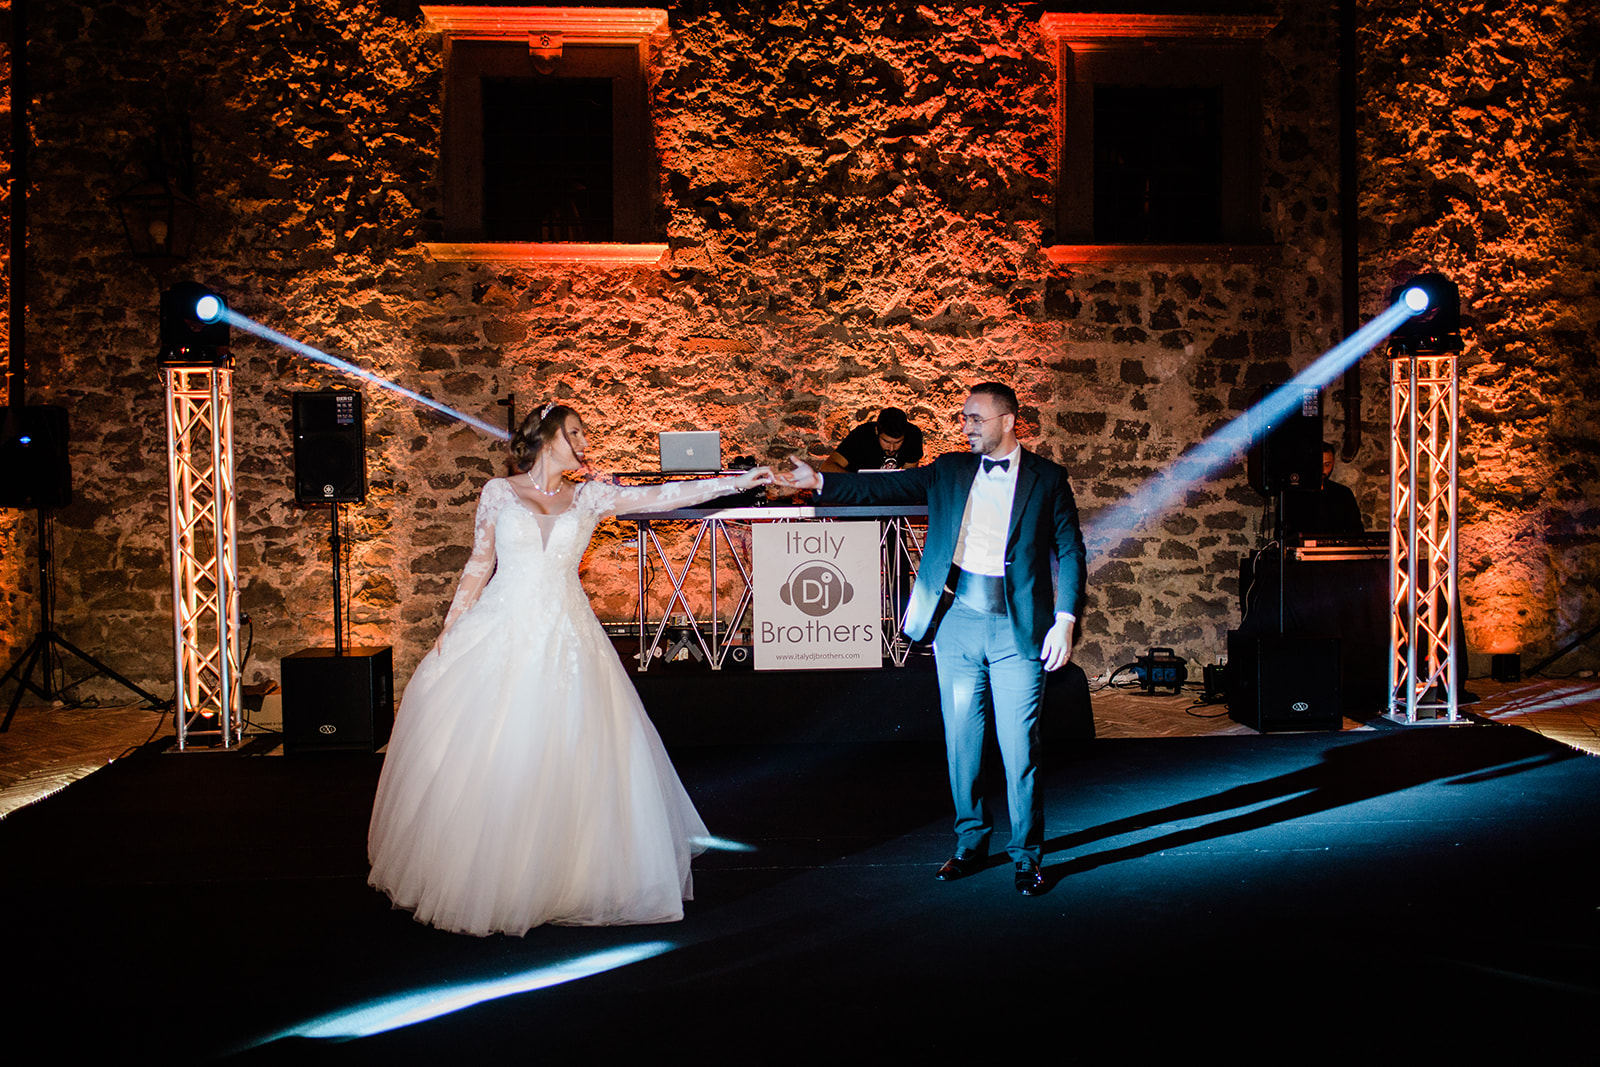 wedding-dj-in-italy